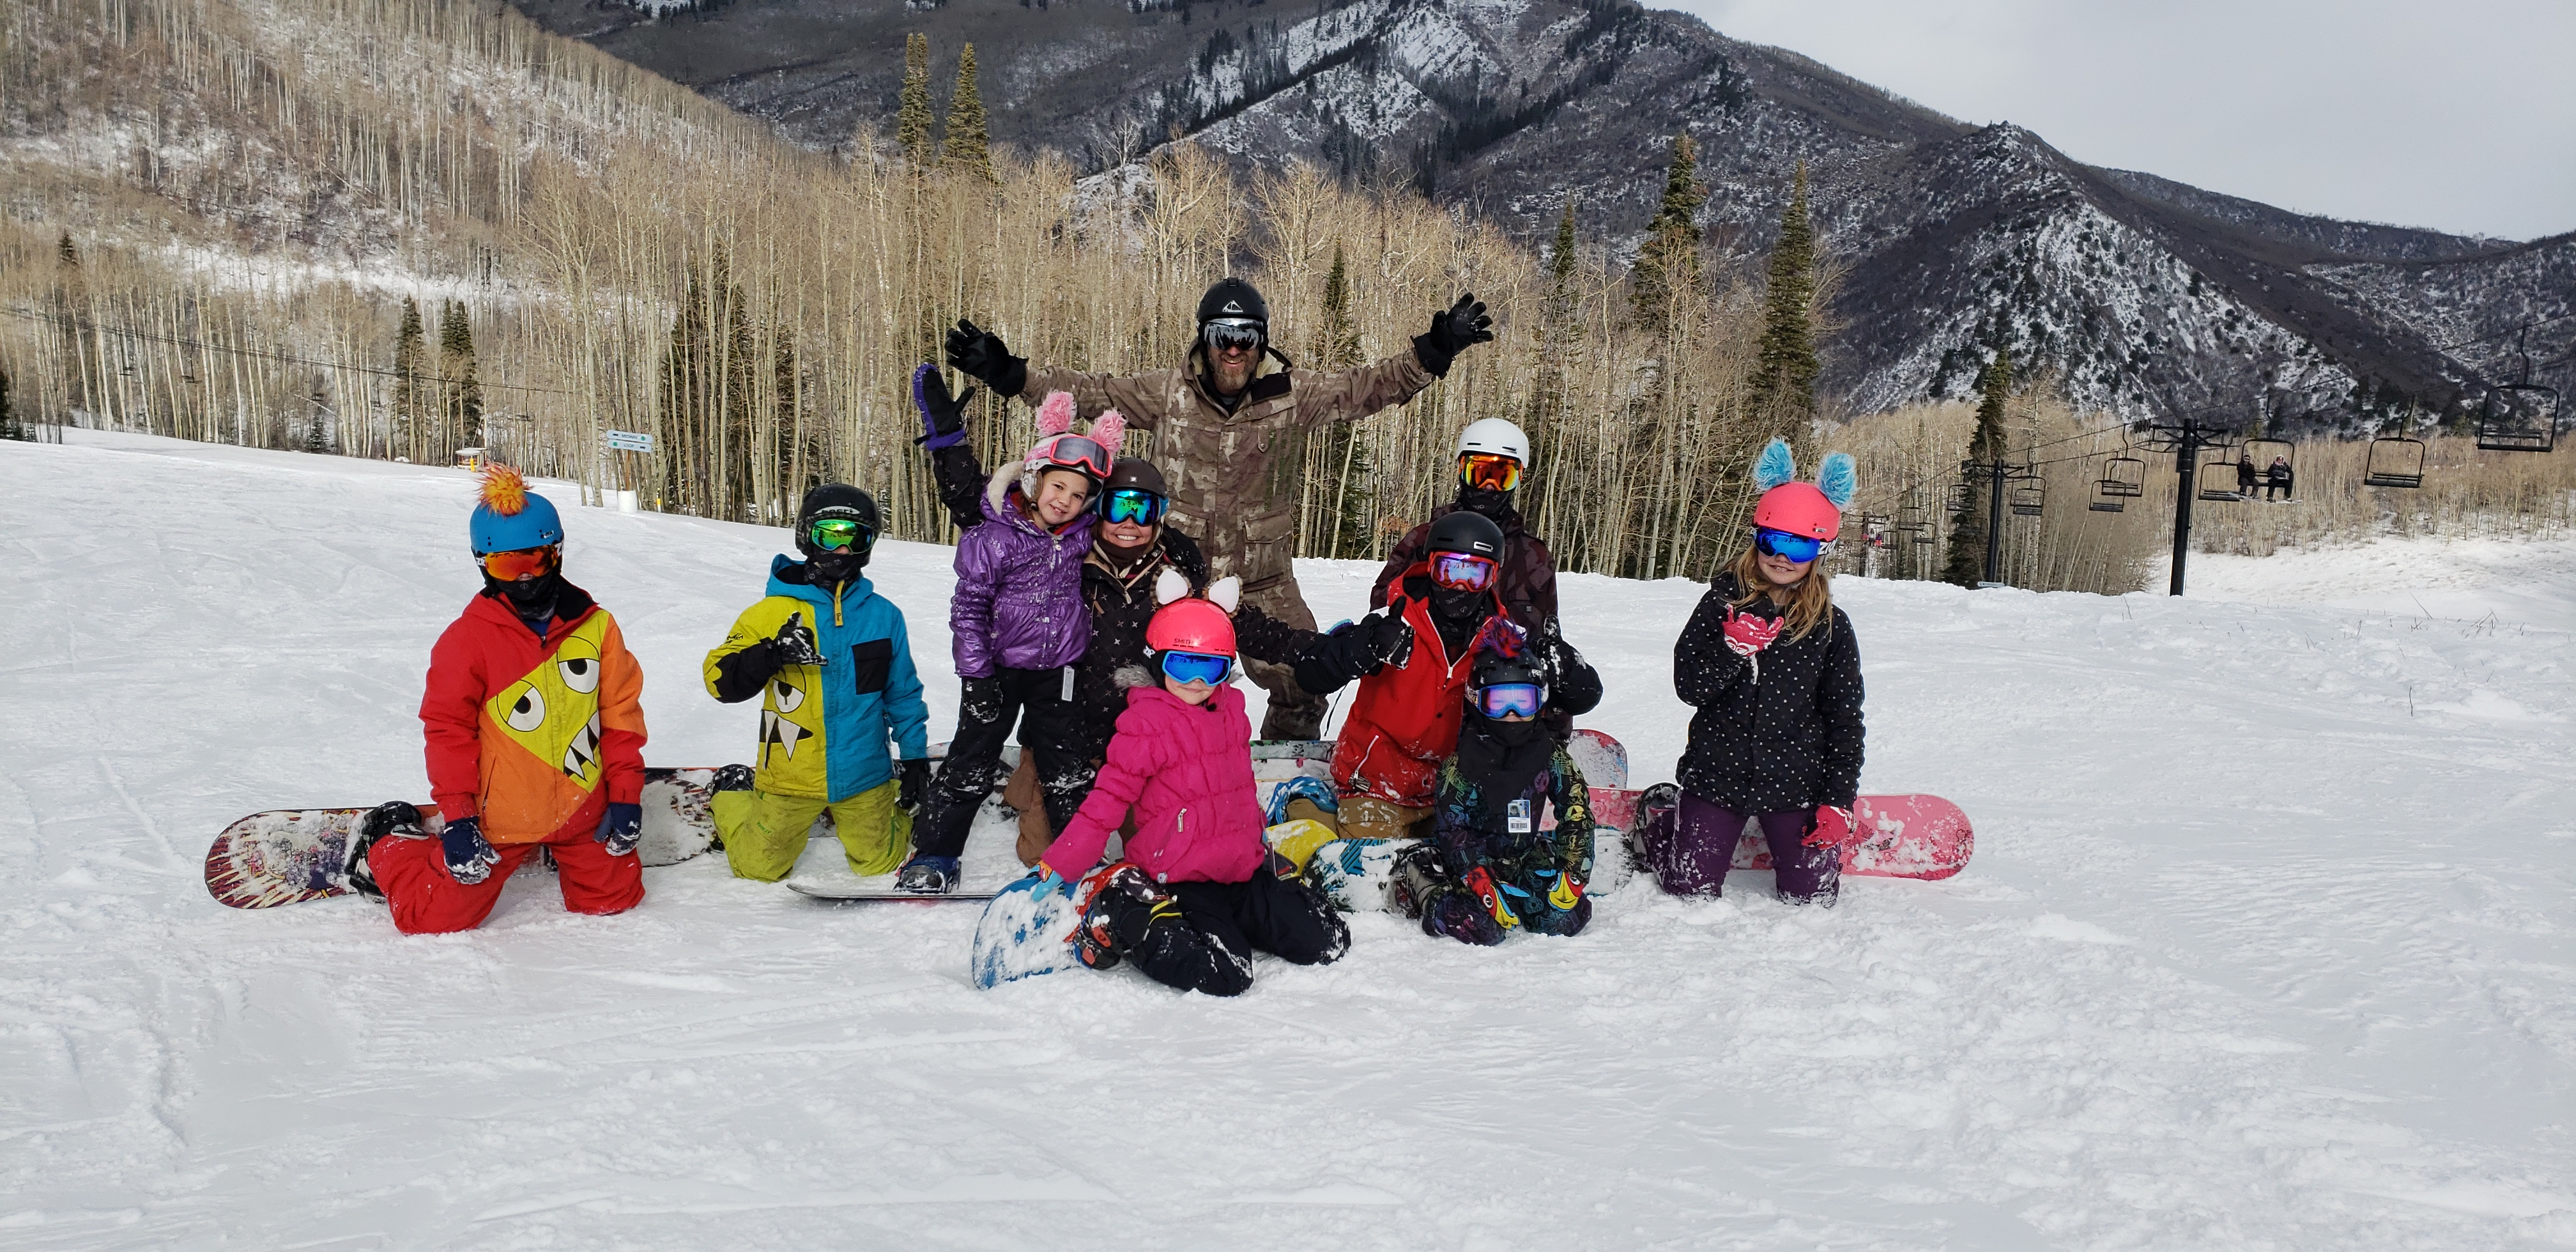 The Best Uncrowded Ski Resorts In Colorado offer the Best Skiing and Snowboarding.